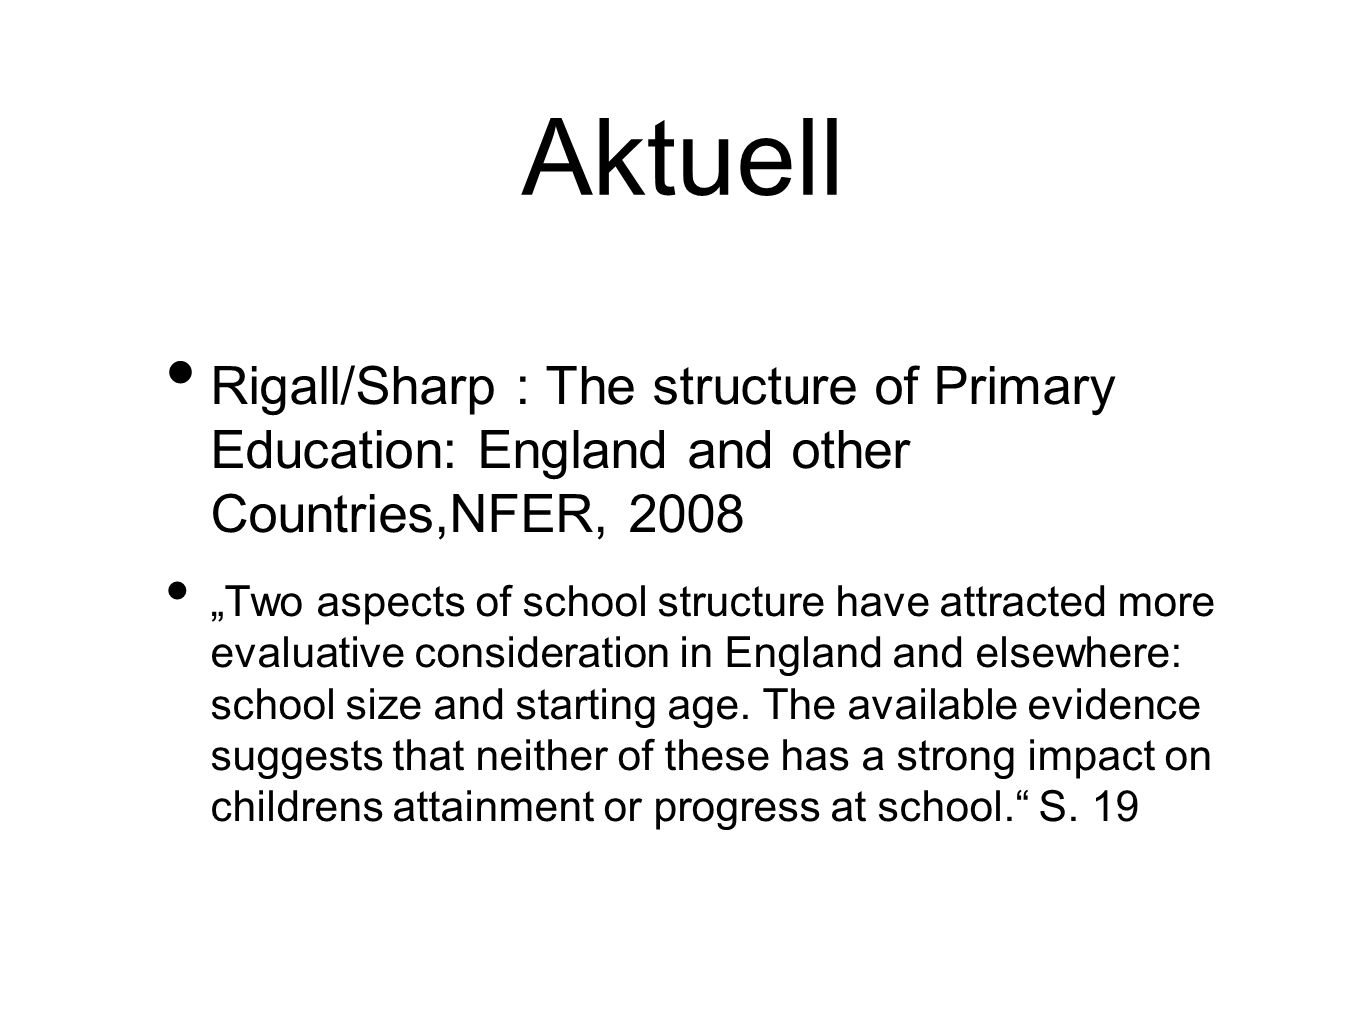 Aktuell Rigall/Sharp : The structure of Primary Education: England and other Countries,NFER,